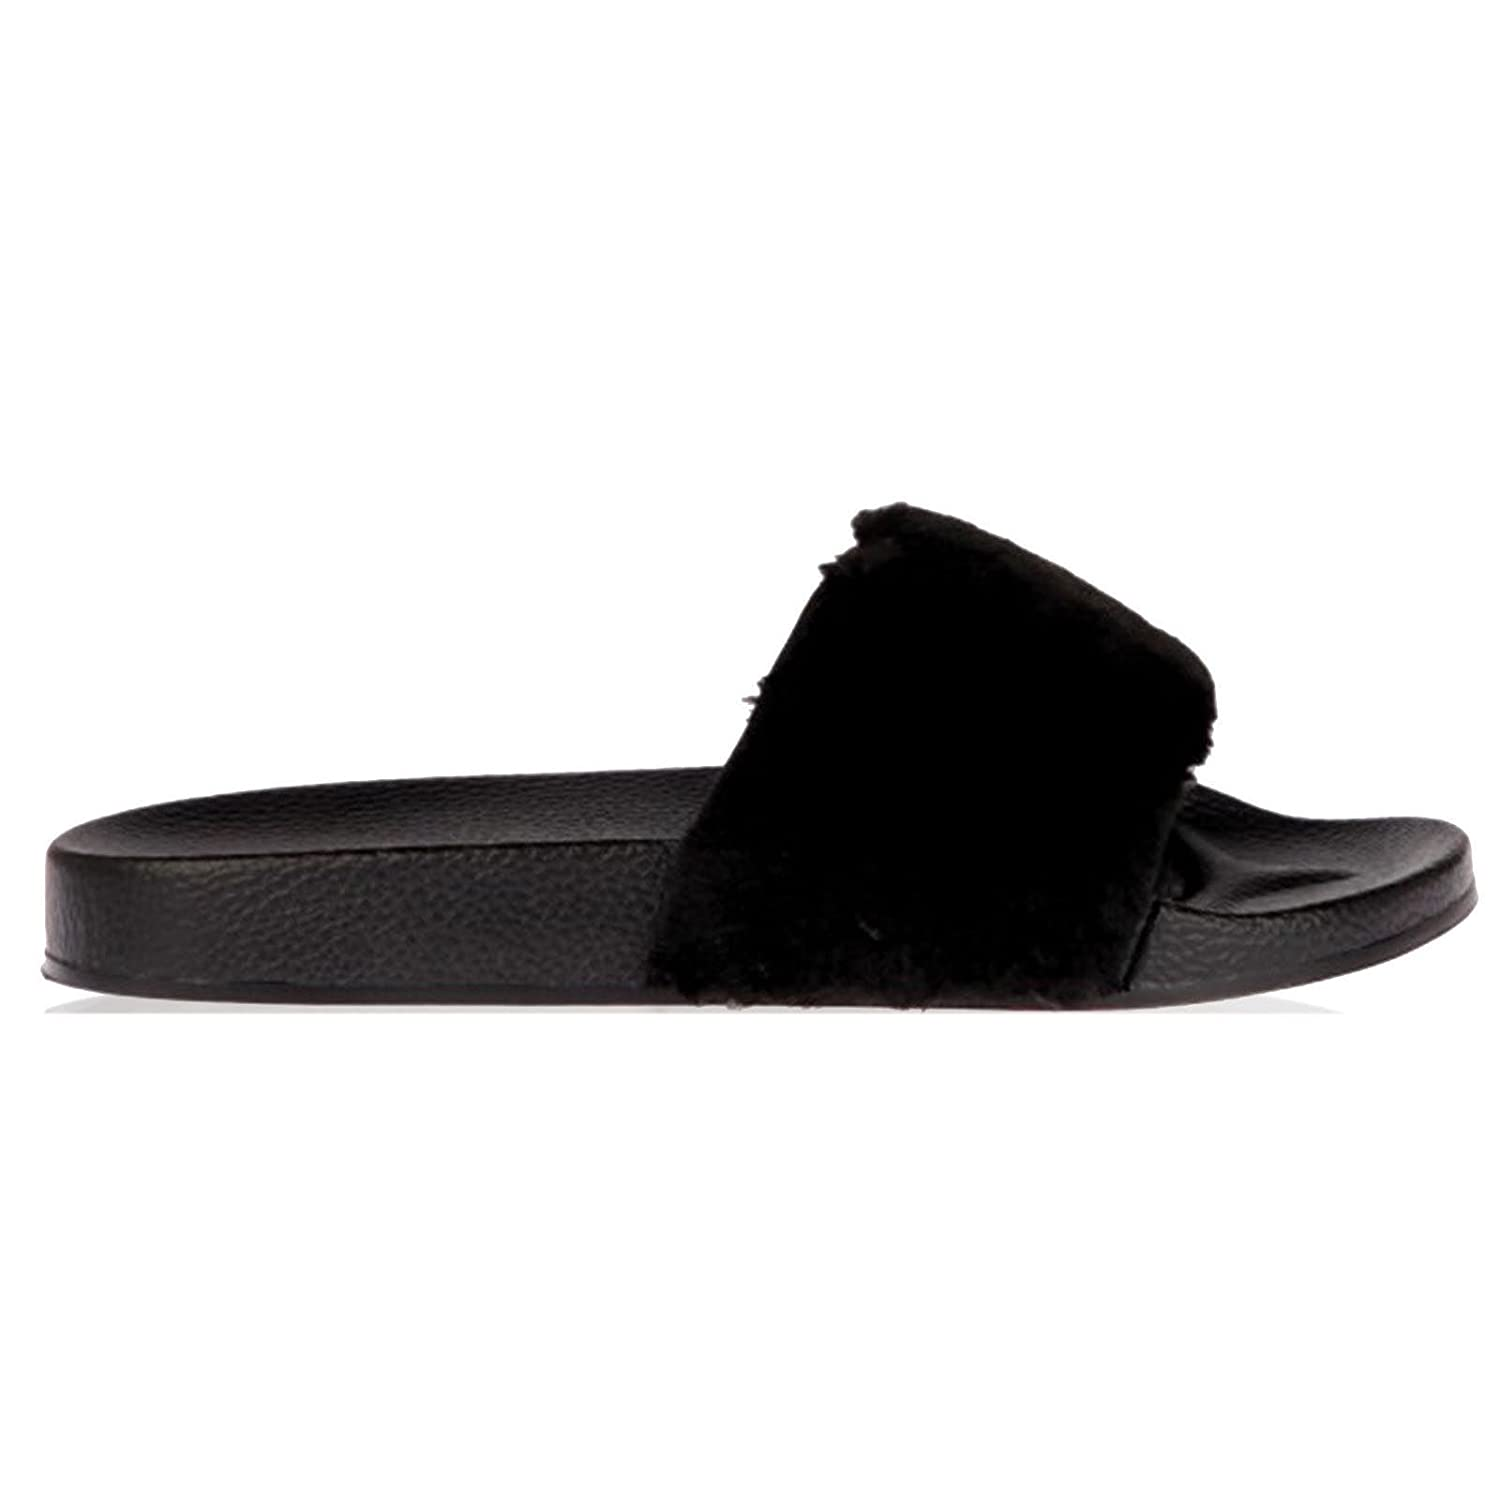 6cc8b6252f0f Womens Slip On Flat Farrah Rubber Slider Mules Fur Slipper Sandals Shoe   Amazon.co.uk  Clothing